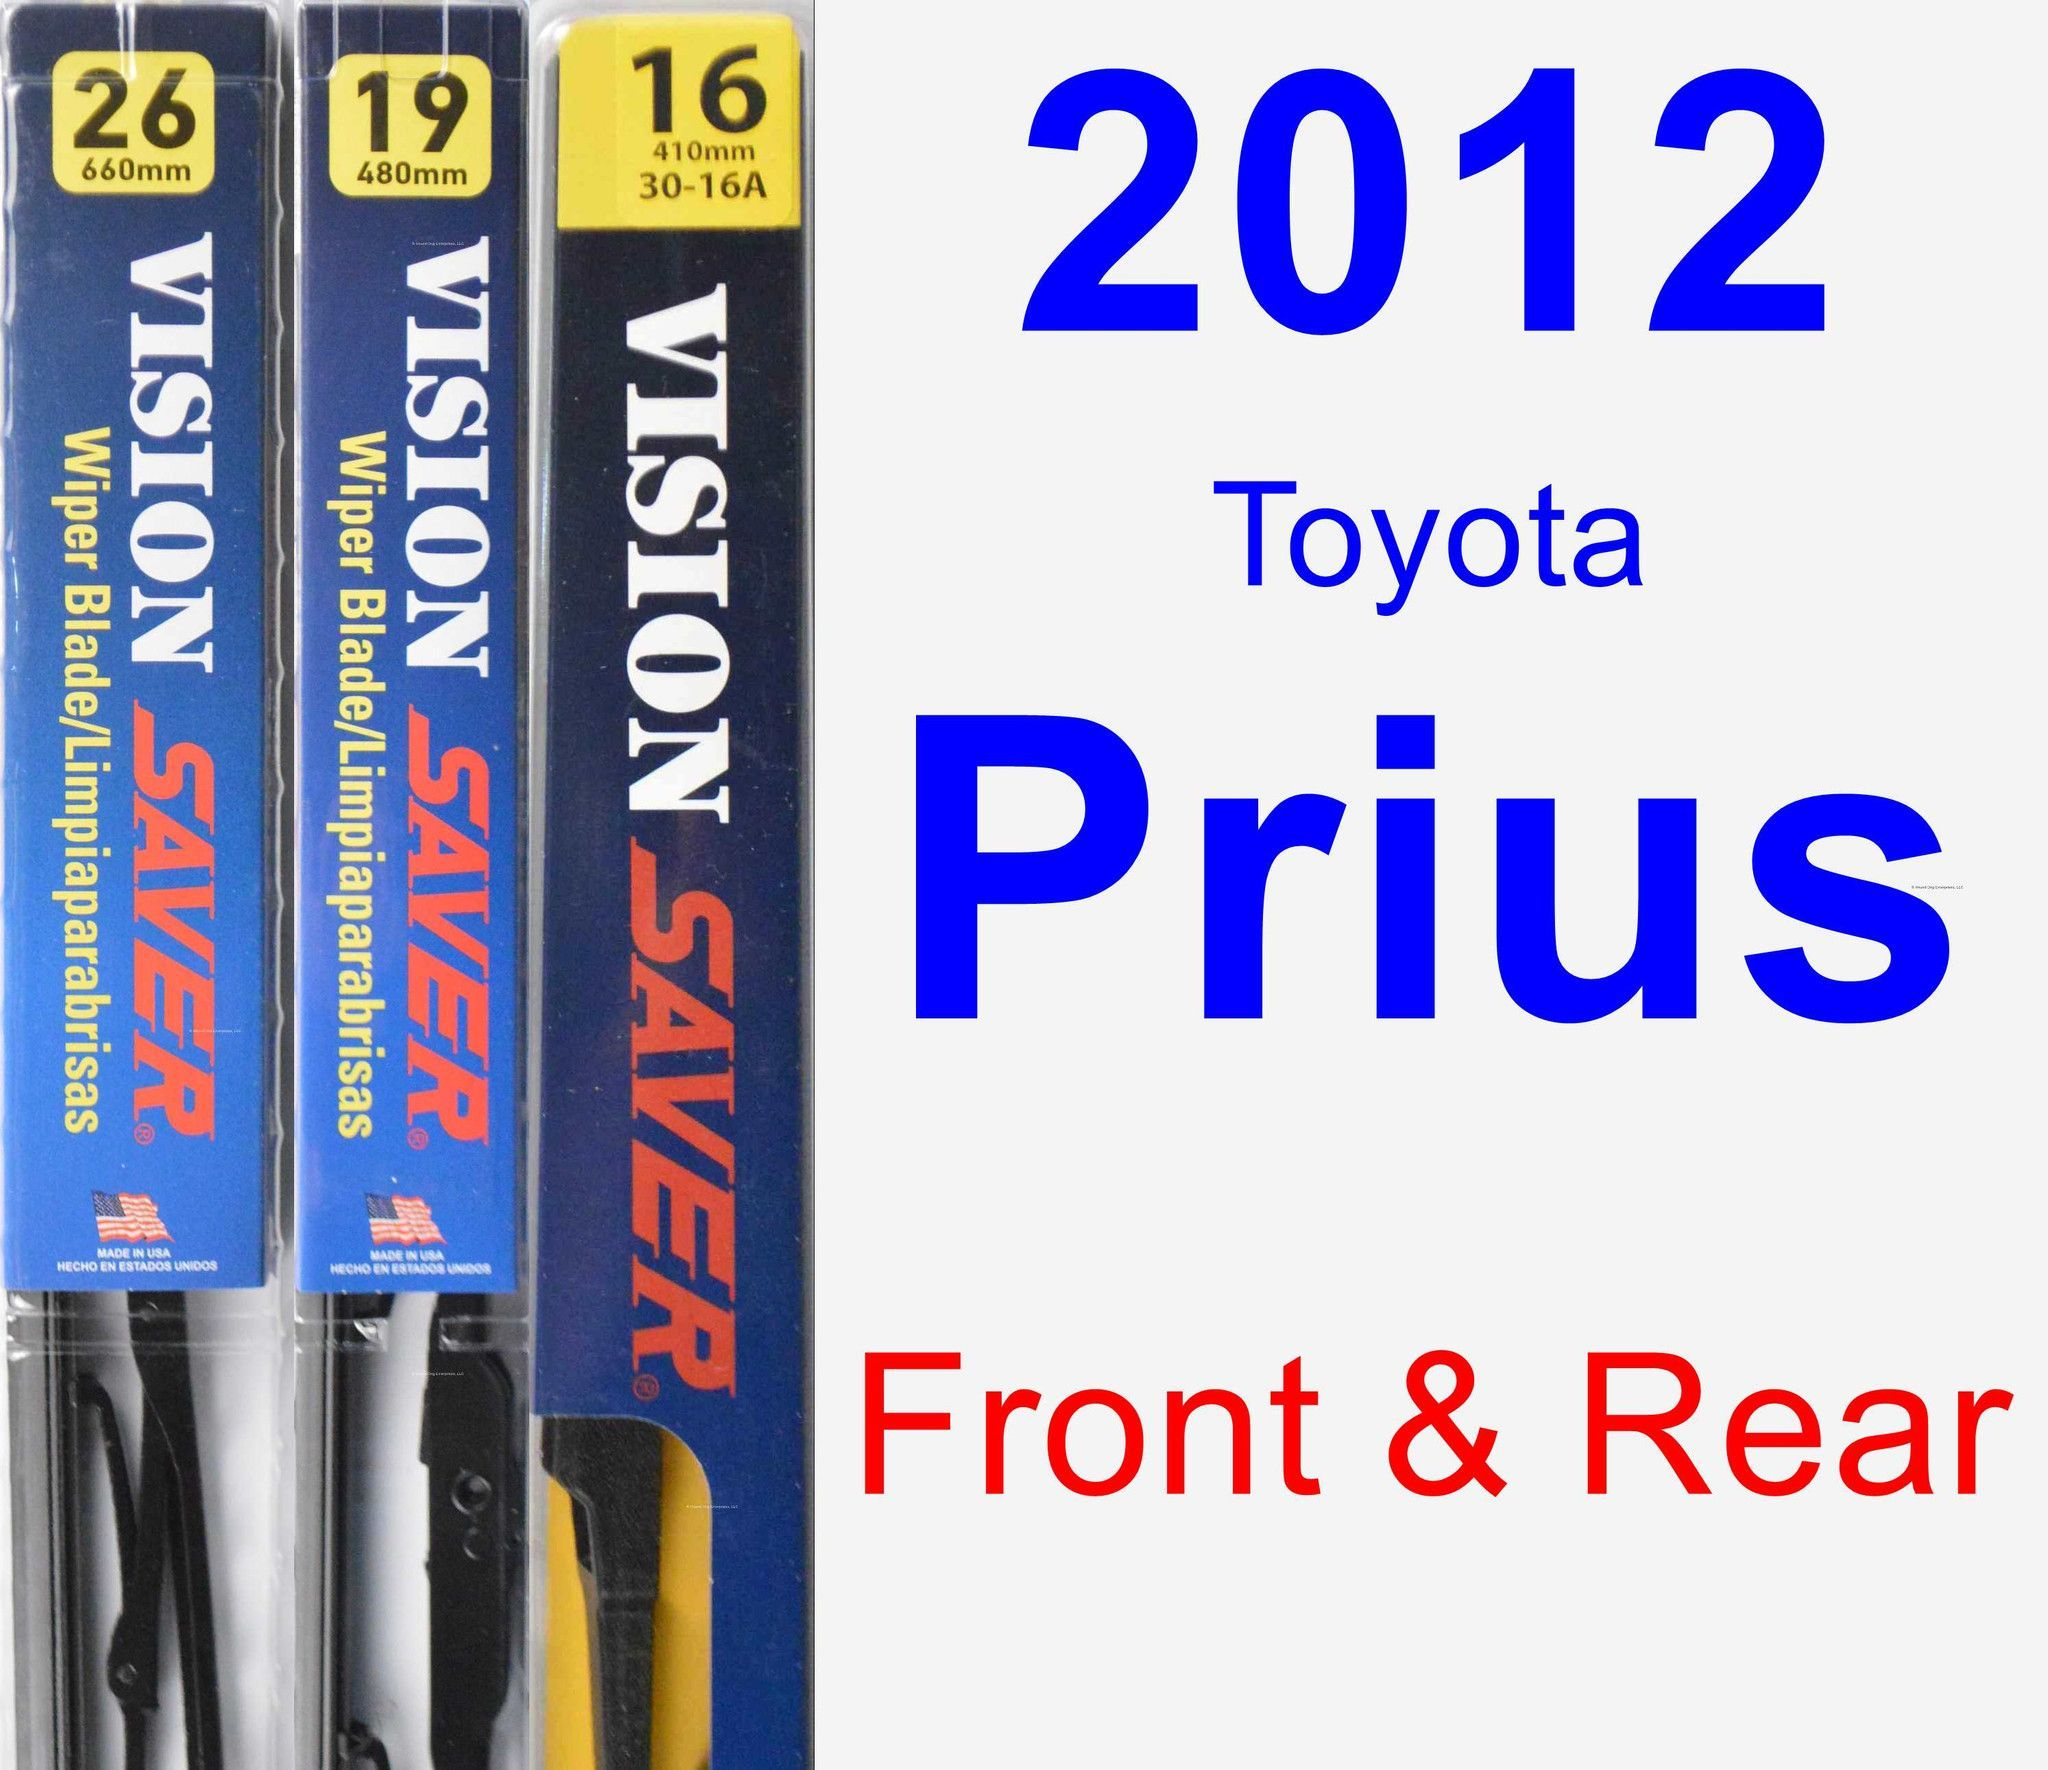 Front & Rear Wiper Blade Pack For 2012 Toyota Prius